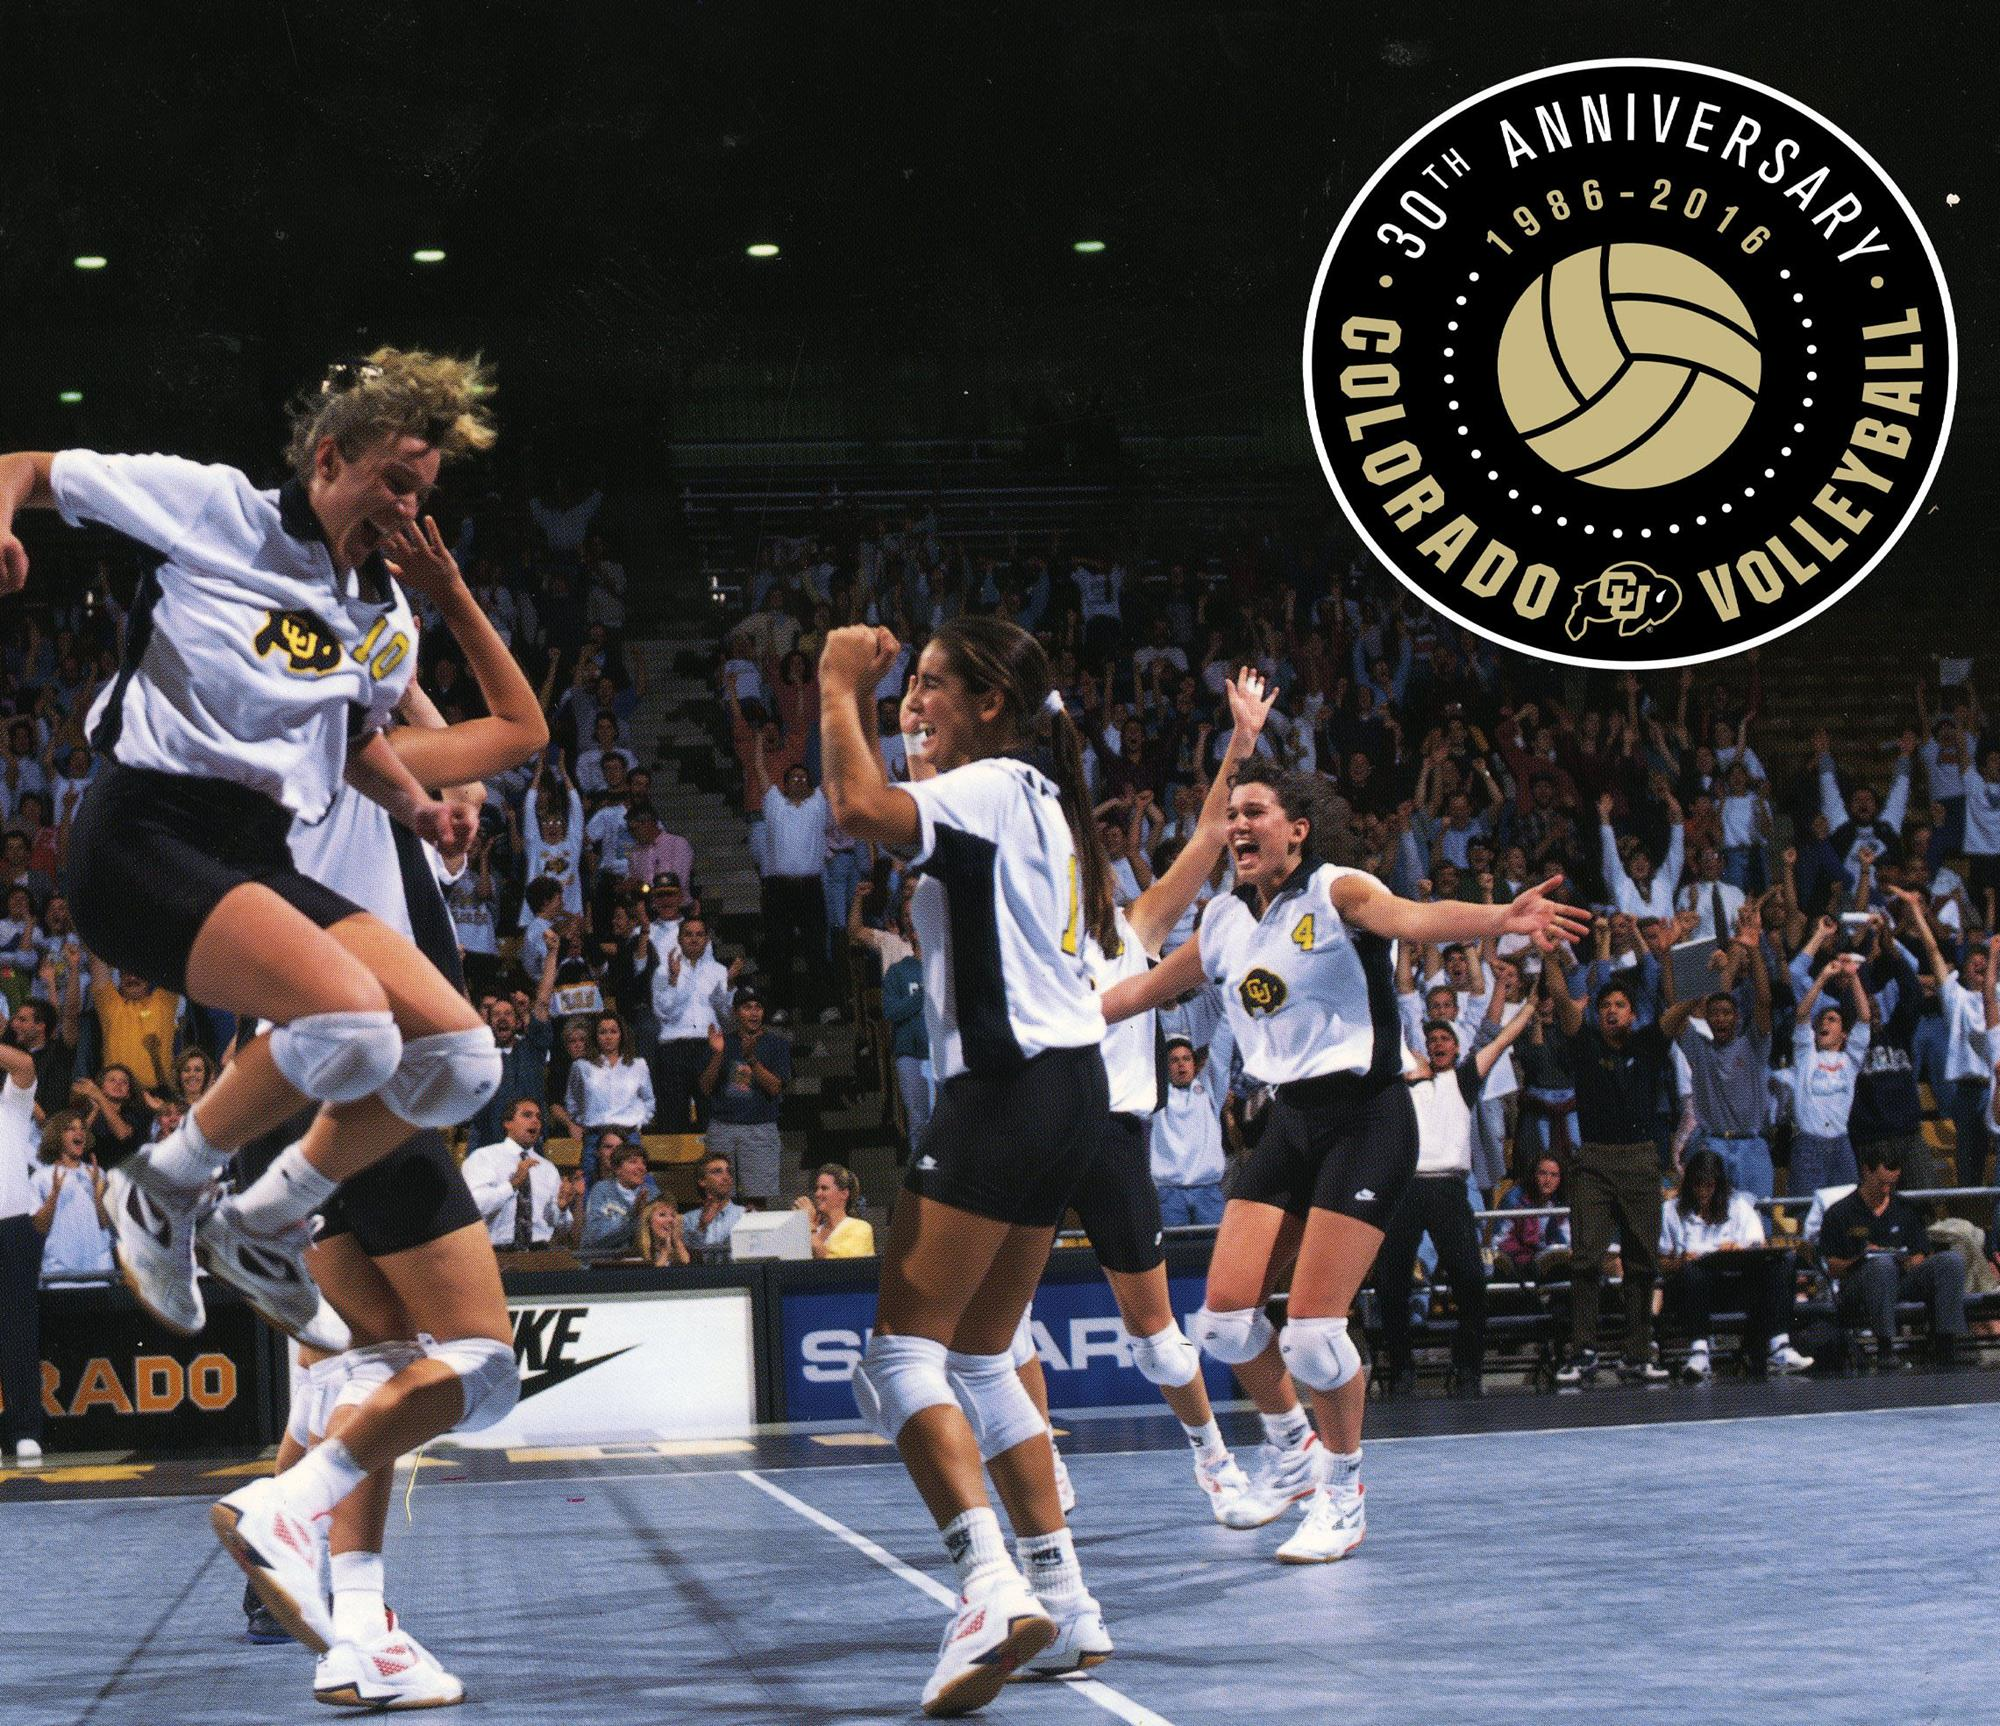 5f61d63a8669b Volleyball Top 30 Moments - University of Colorado Athletics